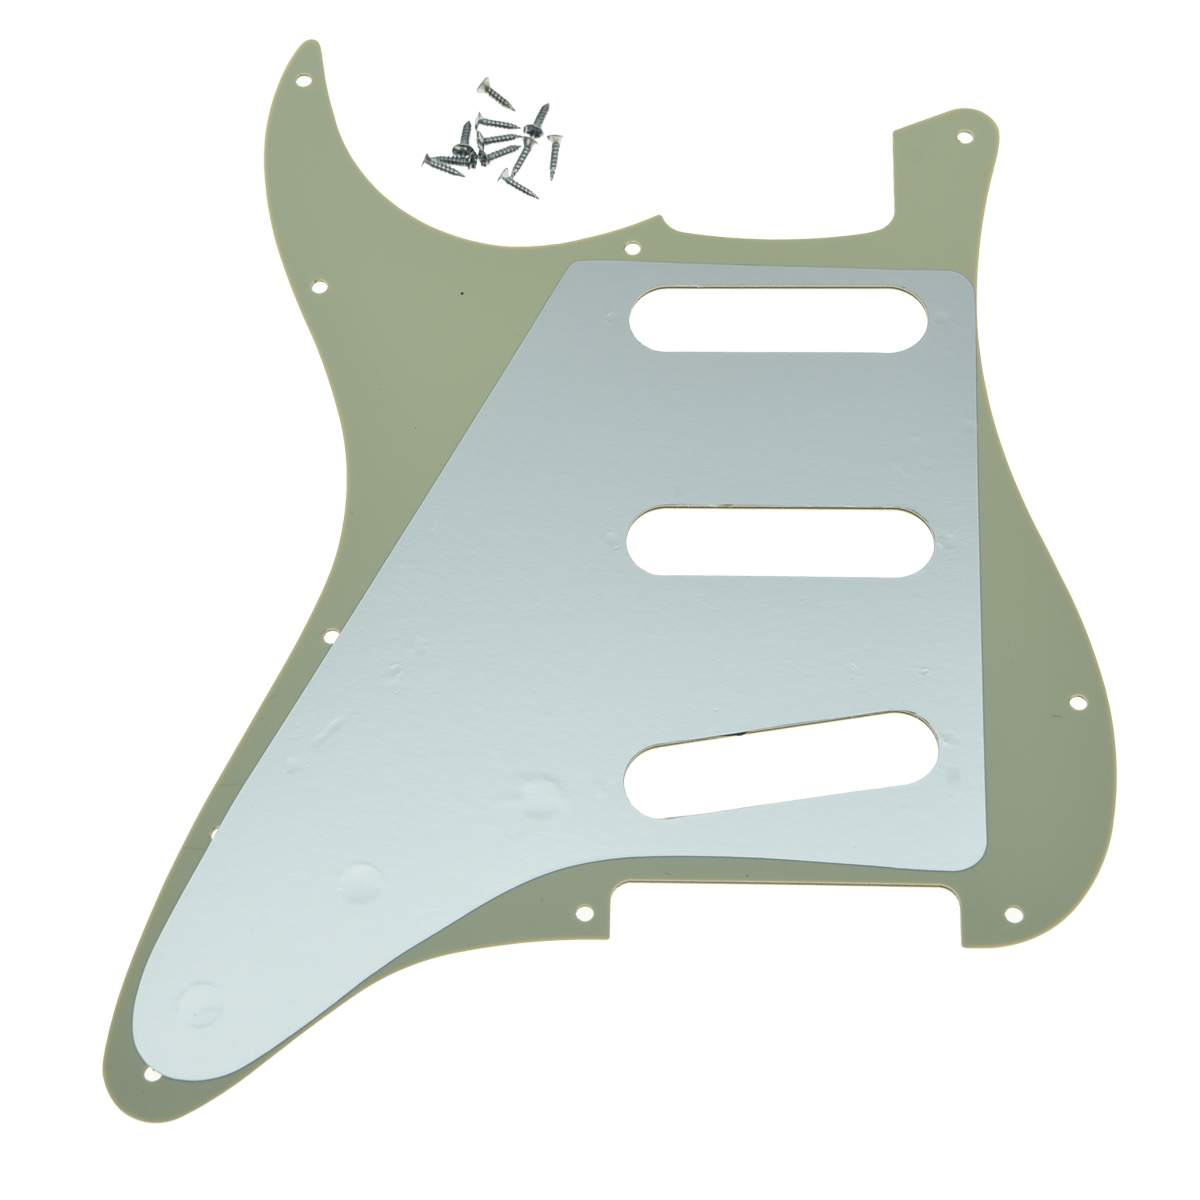 KAISH 11 Hole Strat ST SSS Single Coil Pickups Guitar Pickguard Scratch Plate with Screws for American Fender 62 Stratocaster in Guitar Parts Accessories from Sports Entertainment